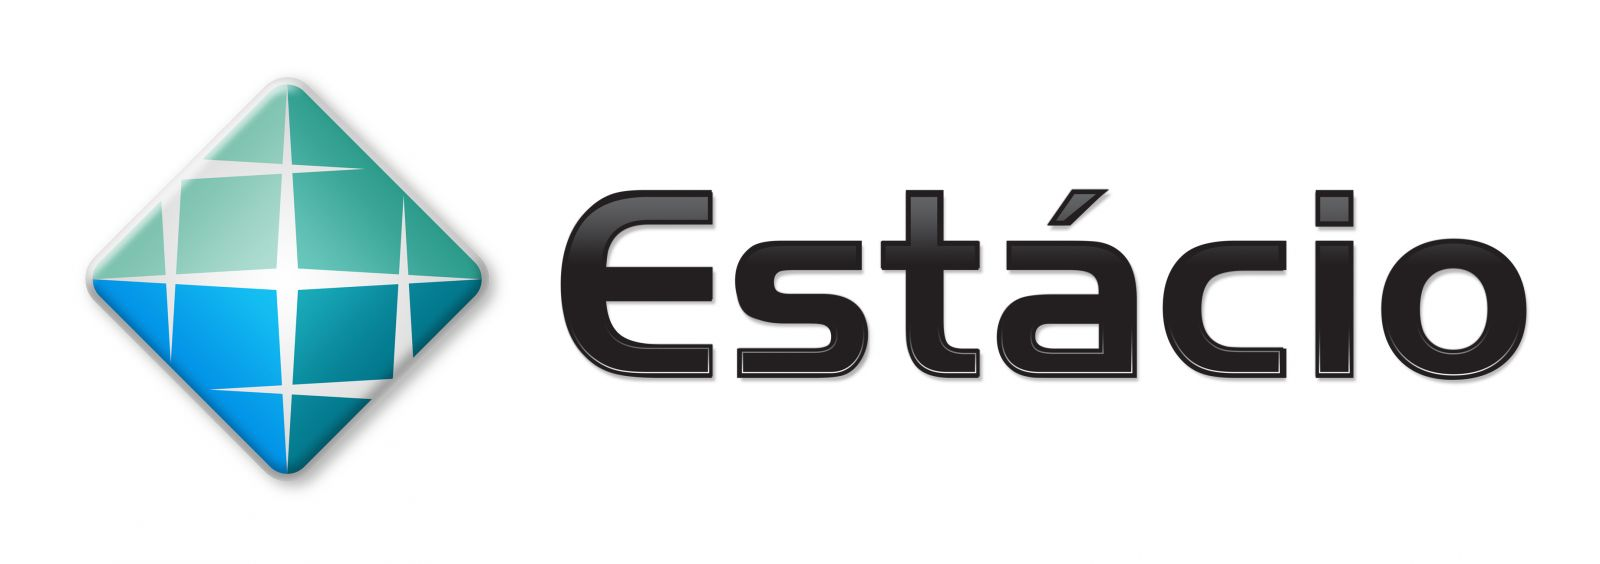 estacio-logo-faculdade-4